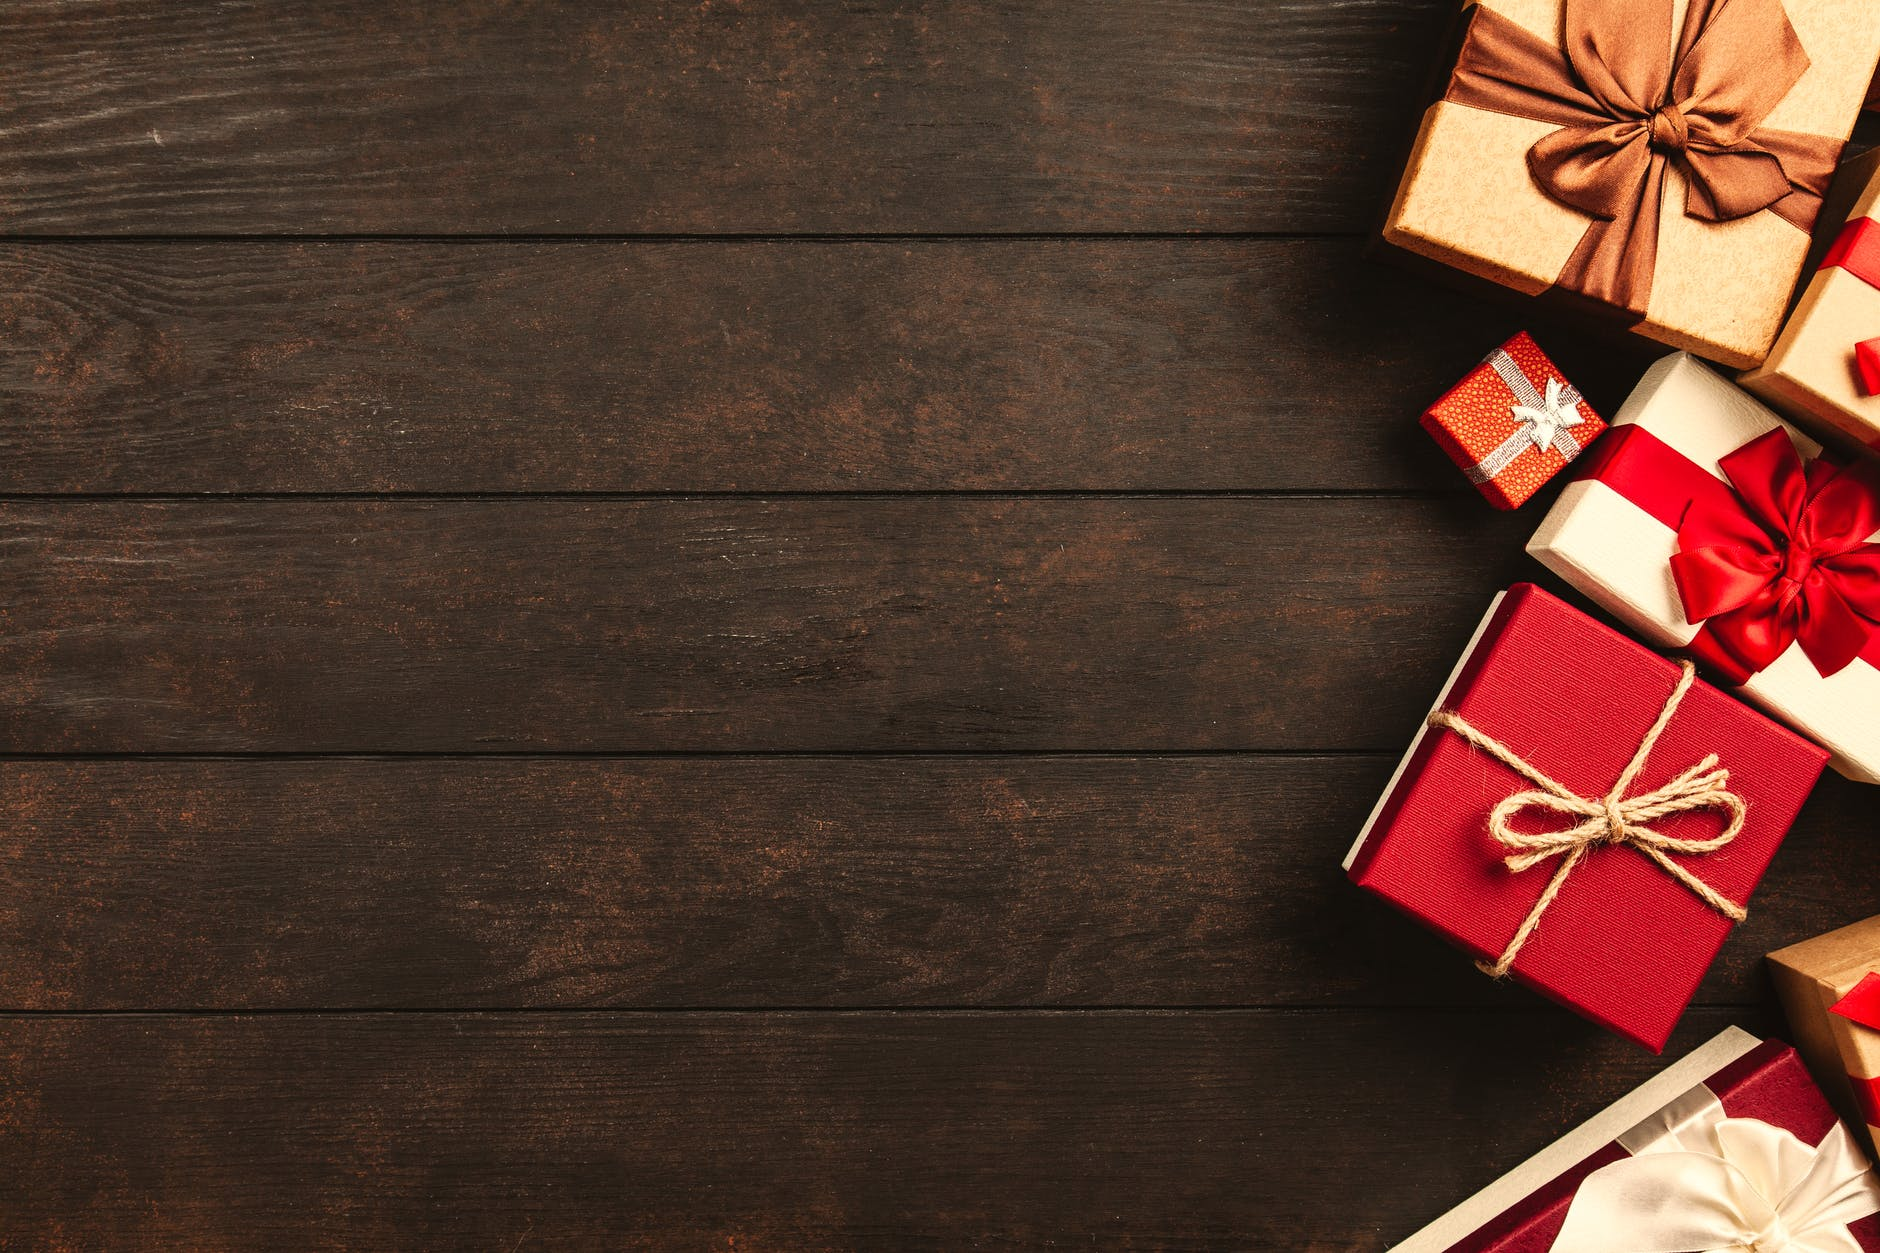 A dark wooden floorboard with a selection of gold and red presents on the right hand side.